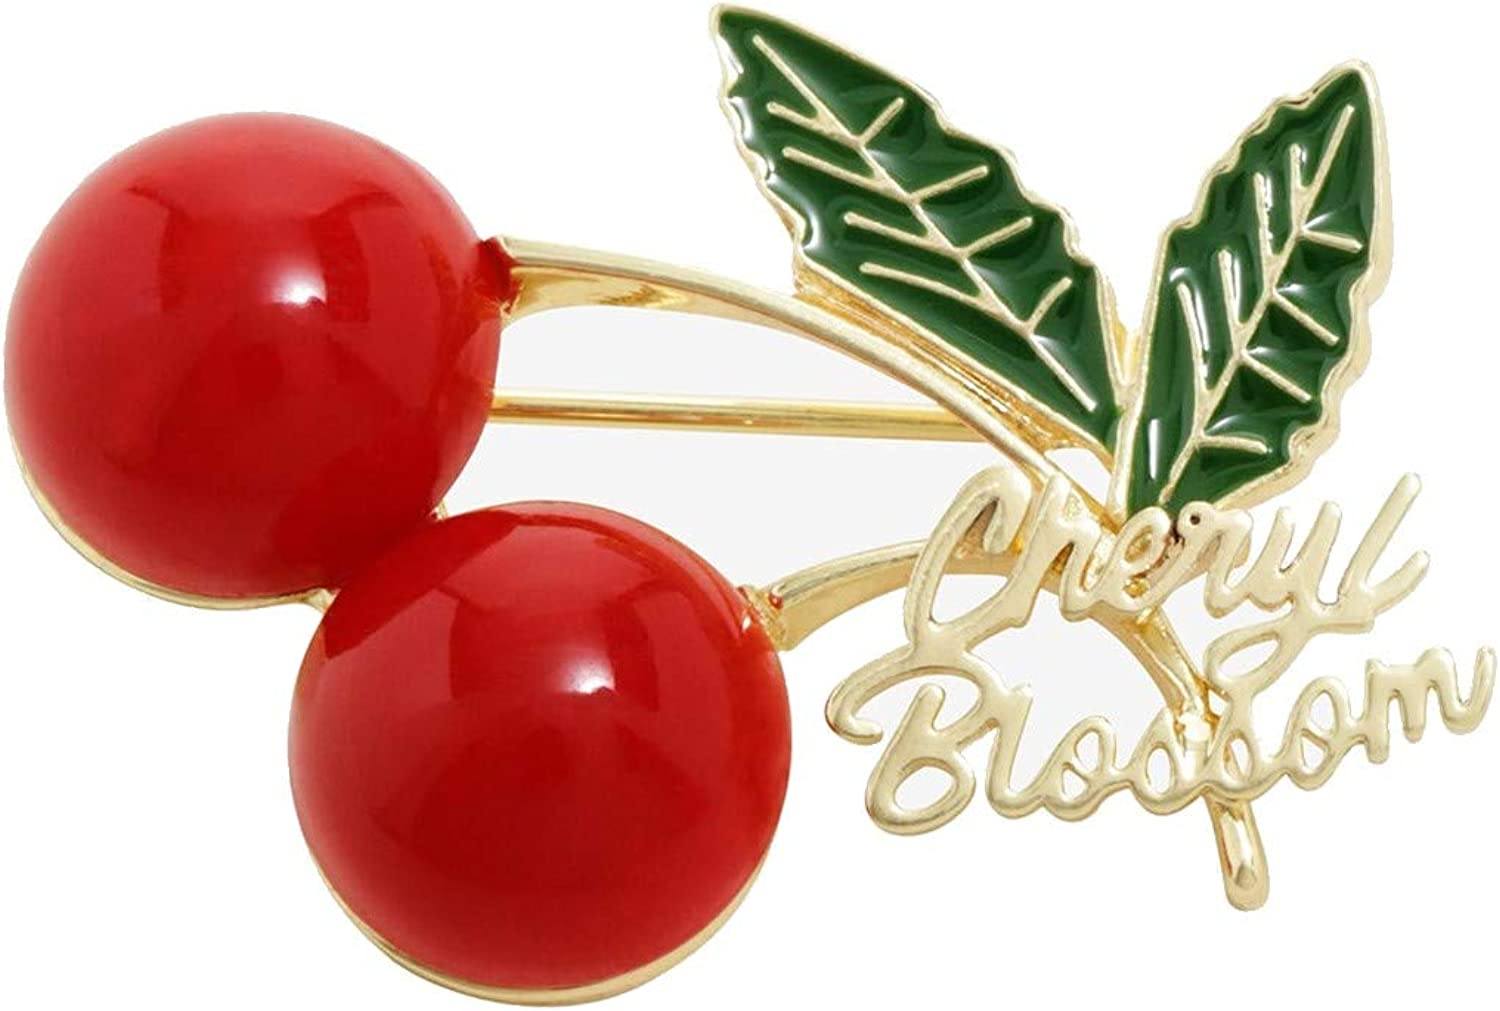 Riverdale Cheryl Blossom Red Cherries Brooch Pin Replica Hot Topic Exclusive Licensed